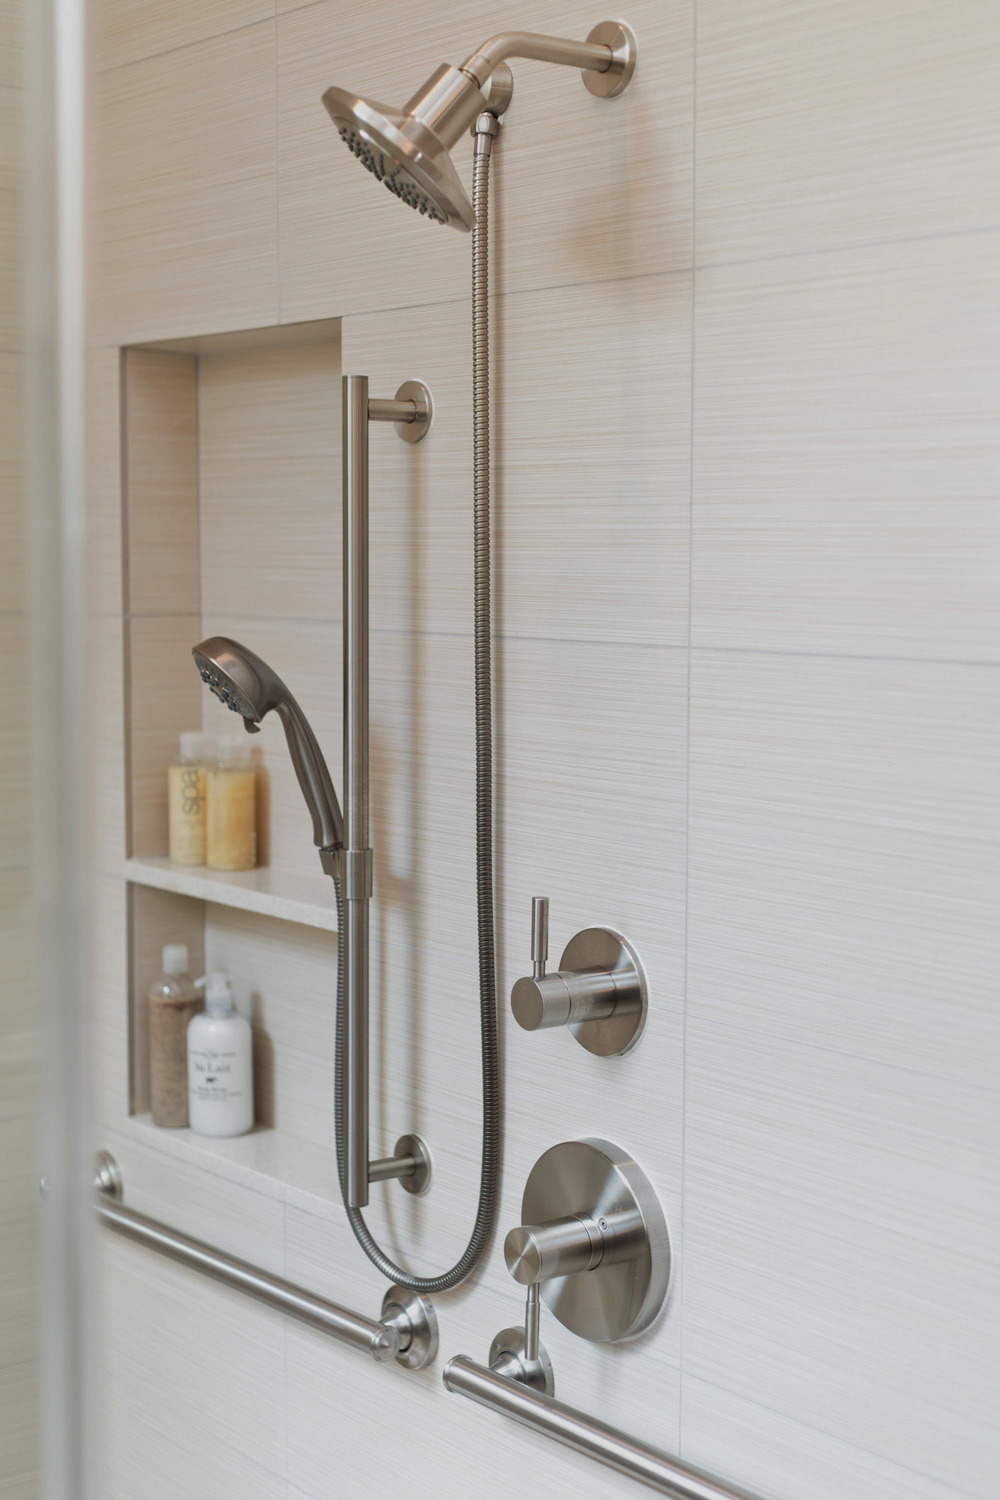 Bathroom remodel featuring: u  niversal design,   accessible bathroom,   curbless shower, linear drain, accessibility, and much more! | Interior Designer: Carla Aston / Photographer: Tori Aston